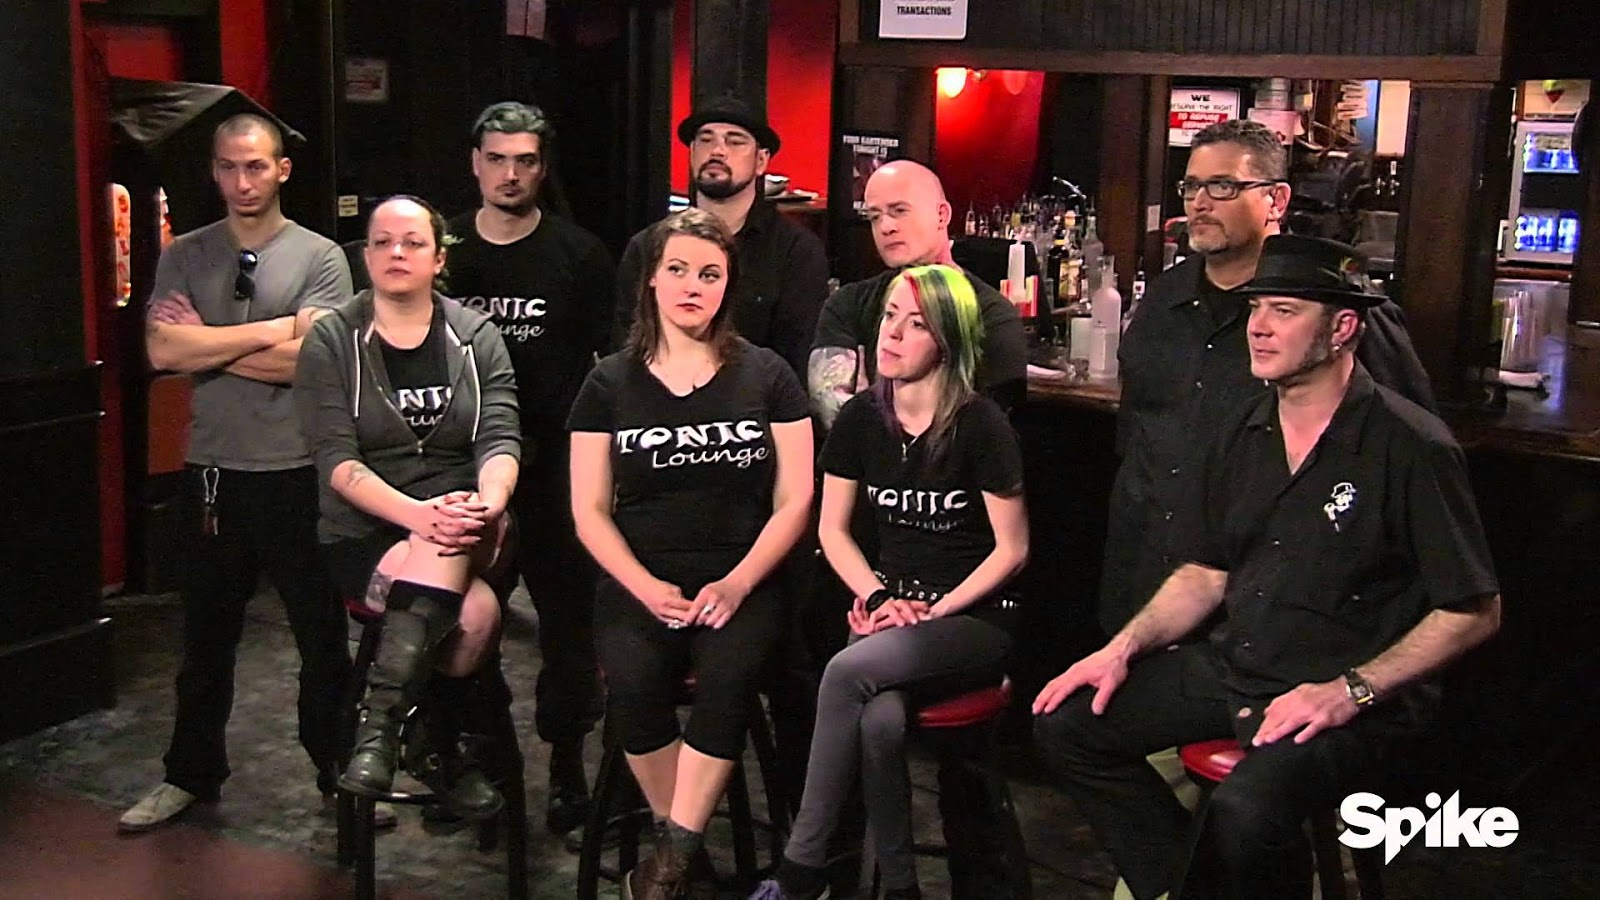 Bar Rescue Updates: Panic Room (Tonic Lounge) From Bar Rescue Has Closed